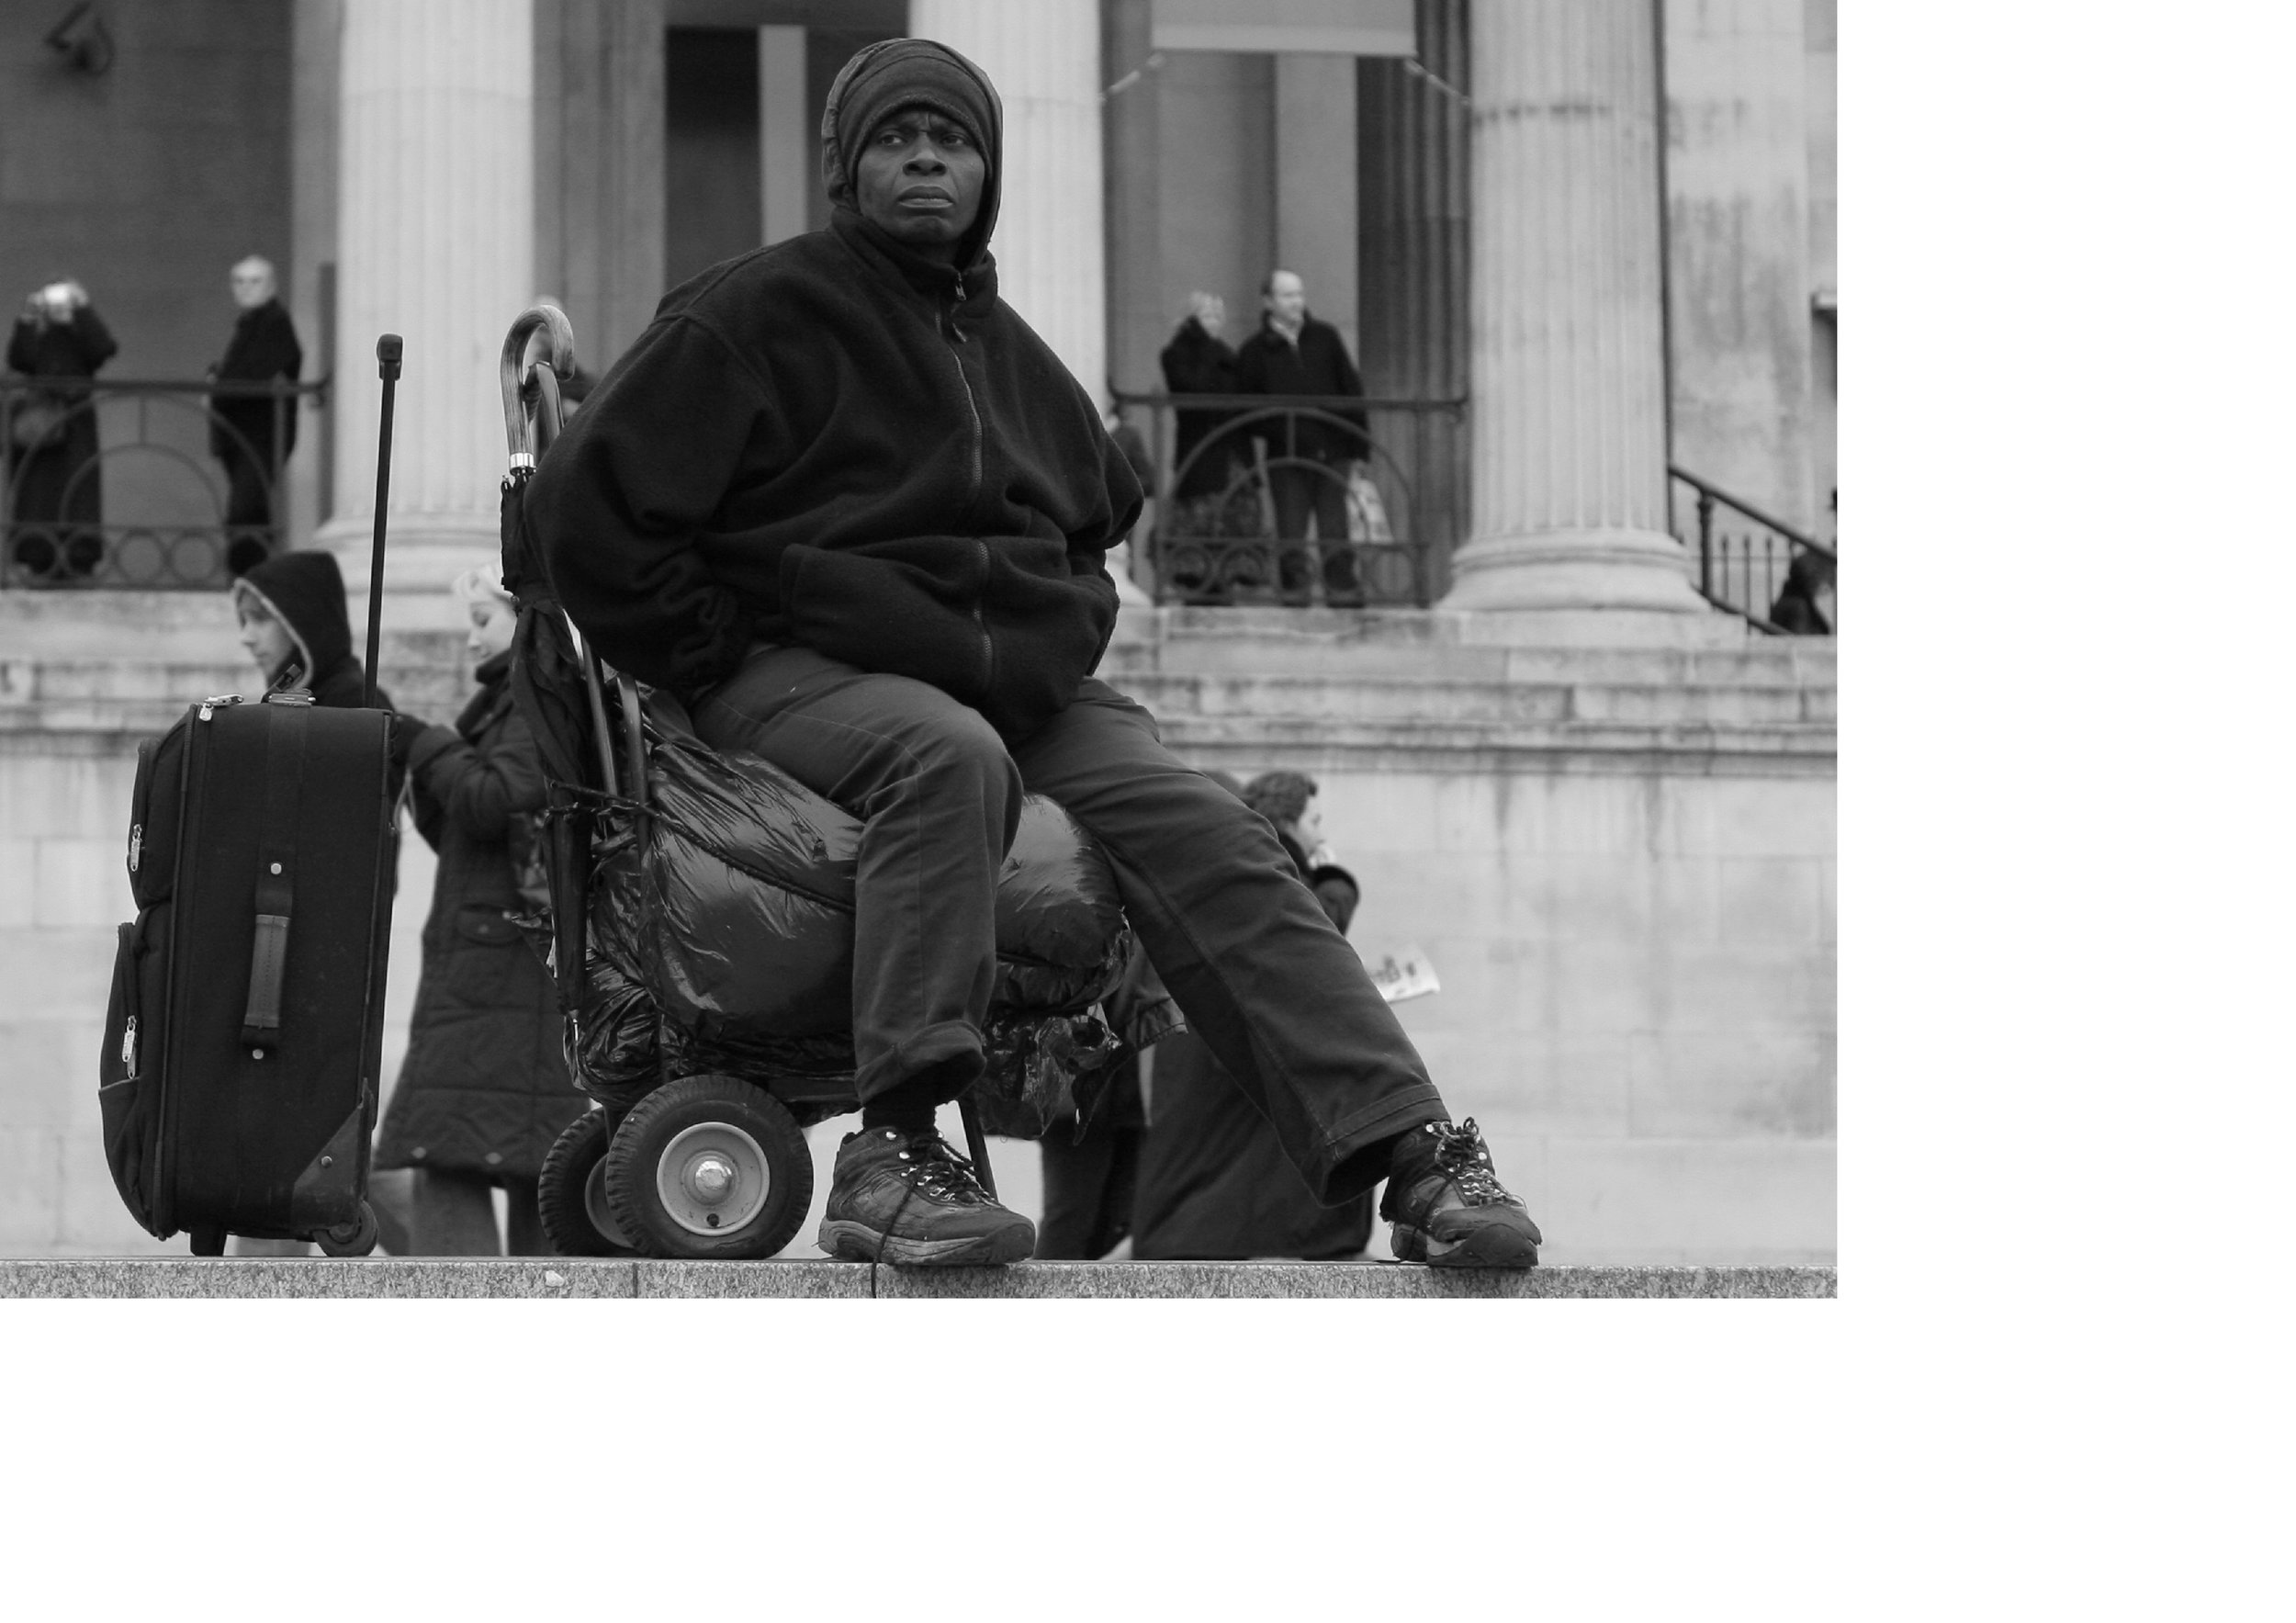 Chronically homeless - Chronic homelessness is defined as an individual who has a disability and has experienced homelessness for a year or longer, or an individual who has a disability and has experienced at least four episodes of homelessness in the last three years (must be a cumulative of 12 months).